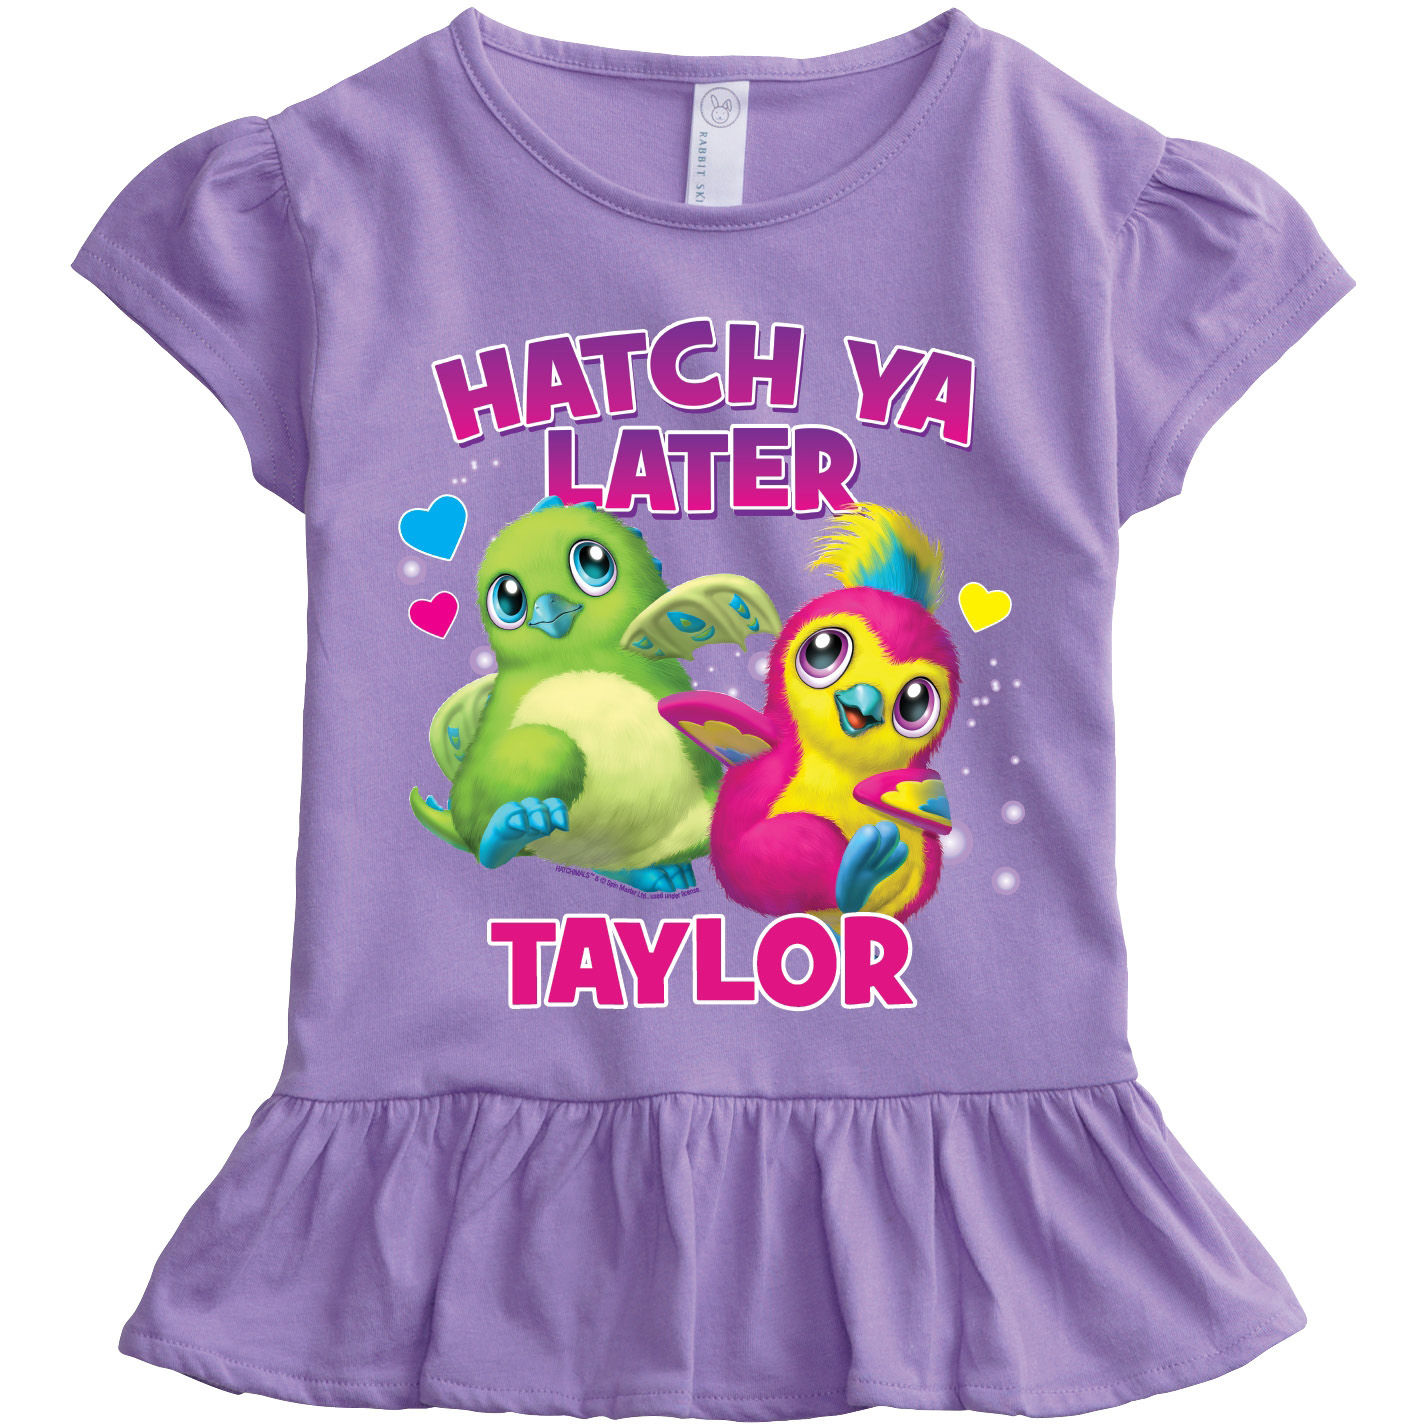 Hatchimals T-Shirt - Personalized Girls Youth Hatch Ya Later Lavender Ruffle Tee - XS, S, M, L